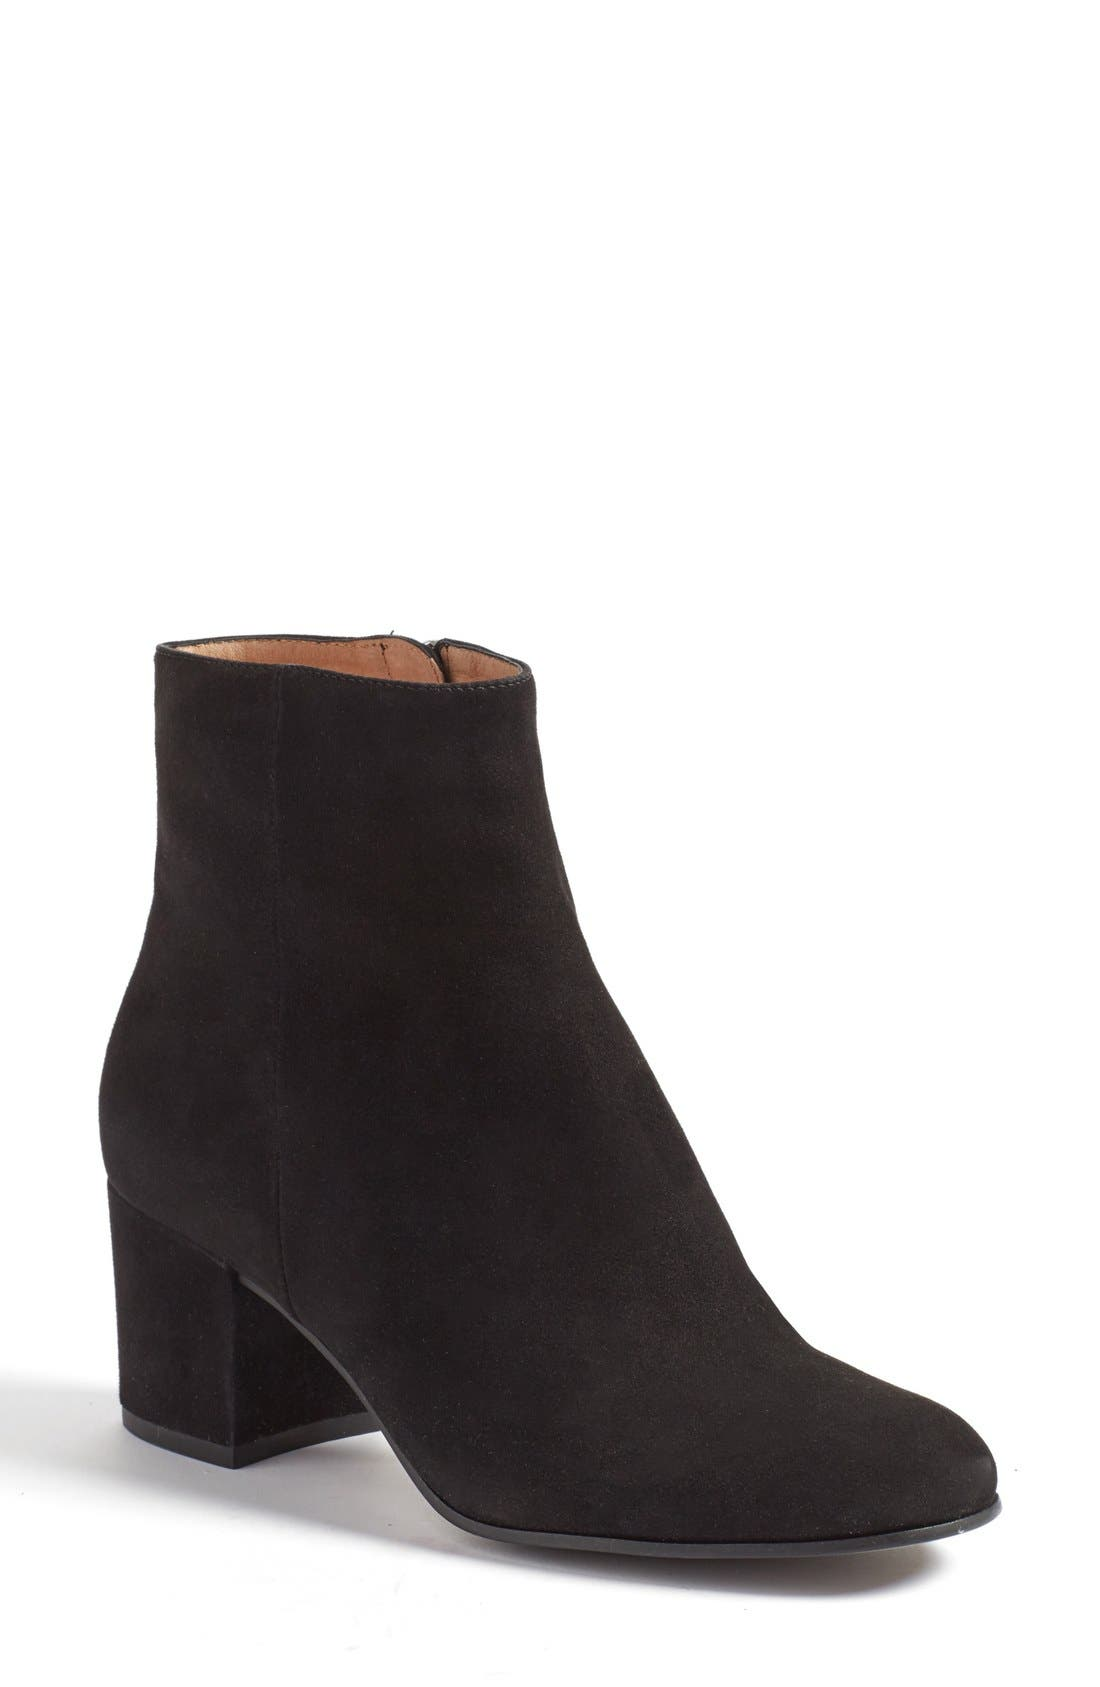 'Cori' Round Toe Bootie,                             Main thumbnail 1, color,                             001